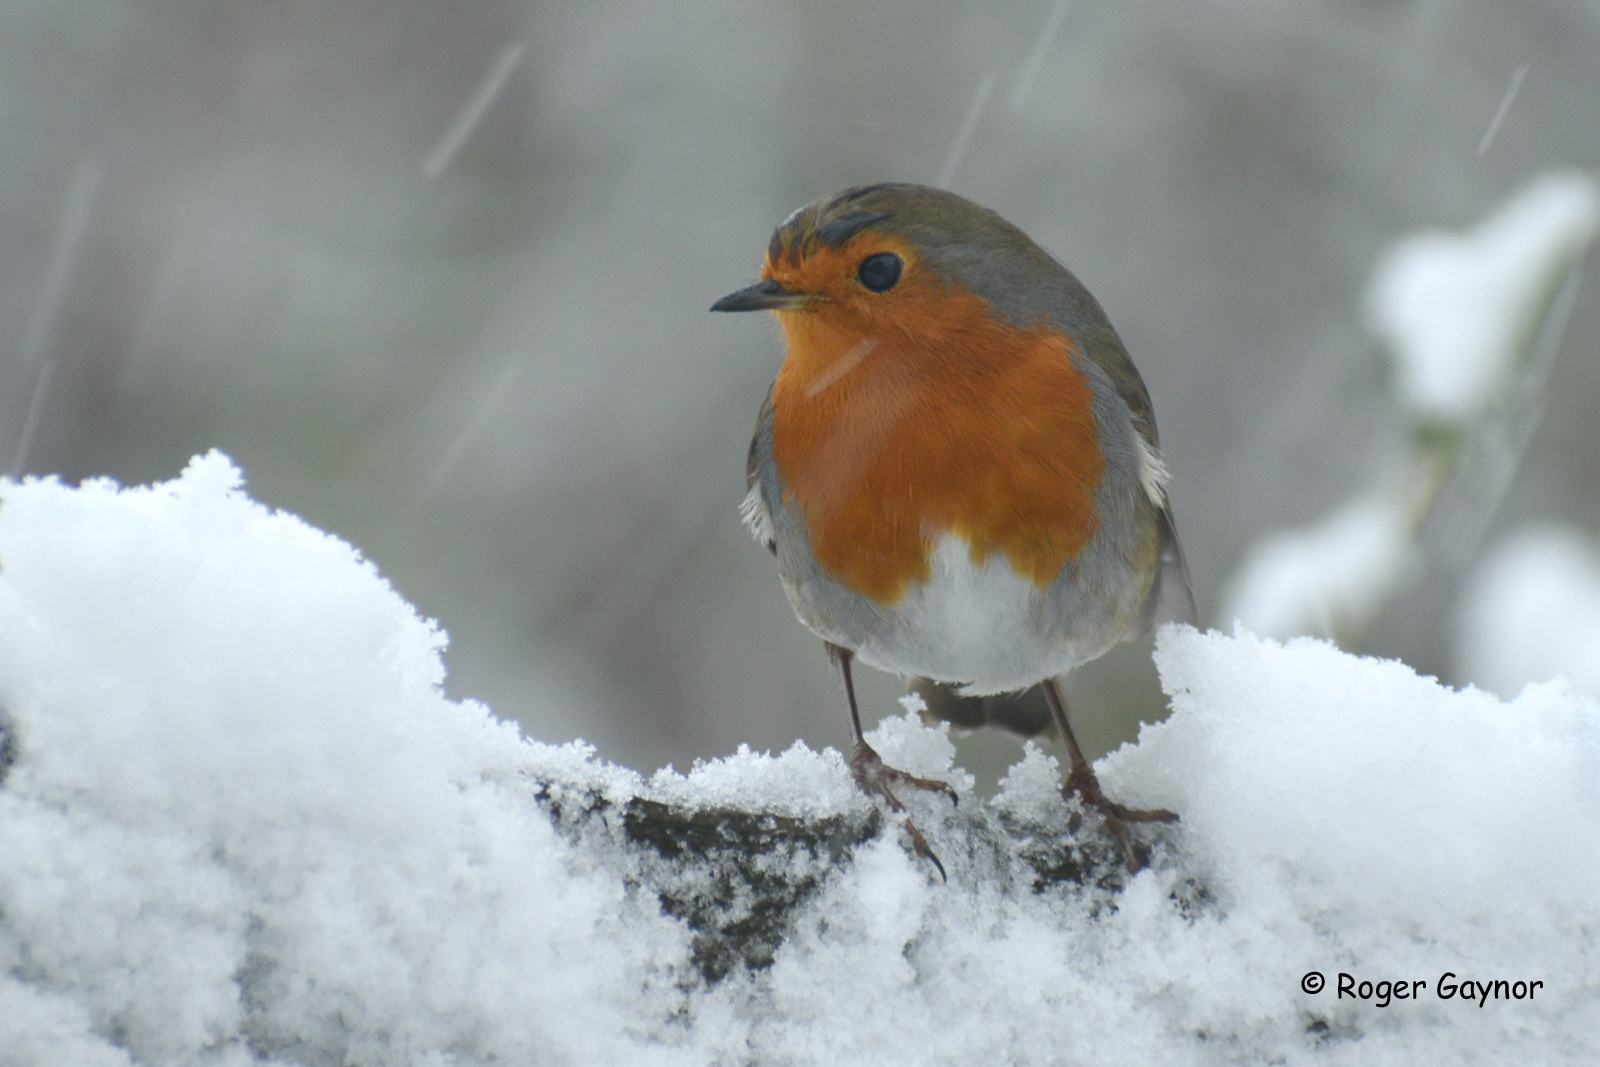 Robin searching for food. 14 January 2021